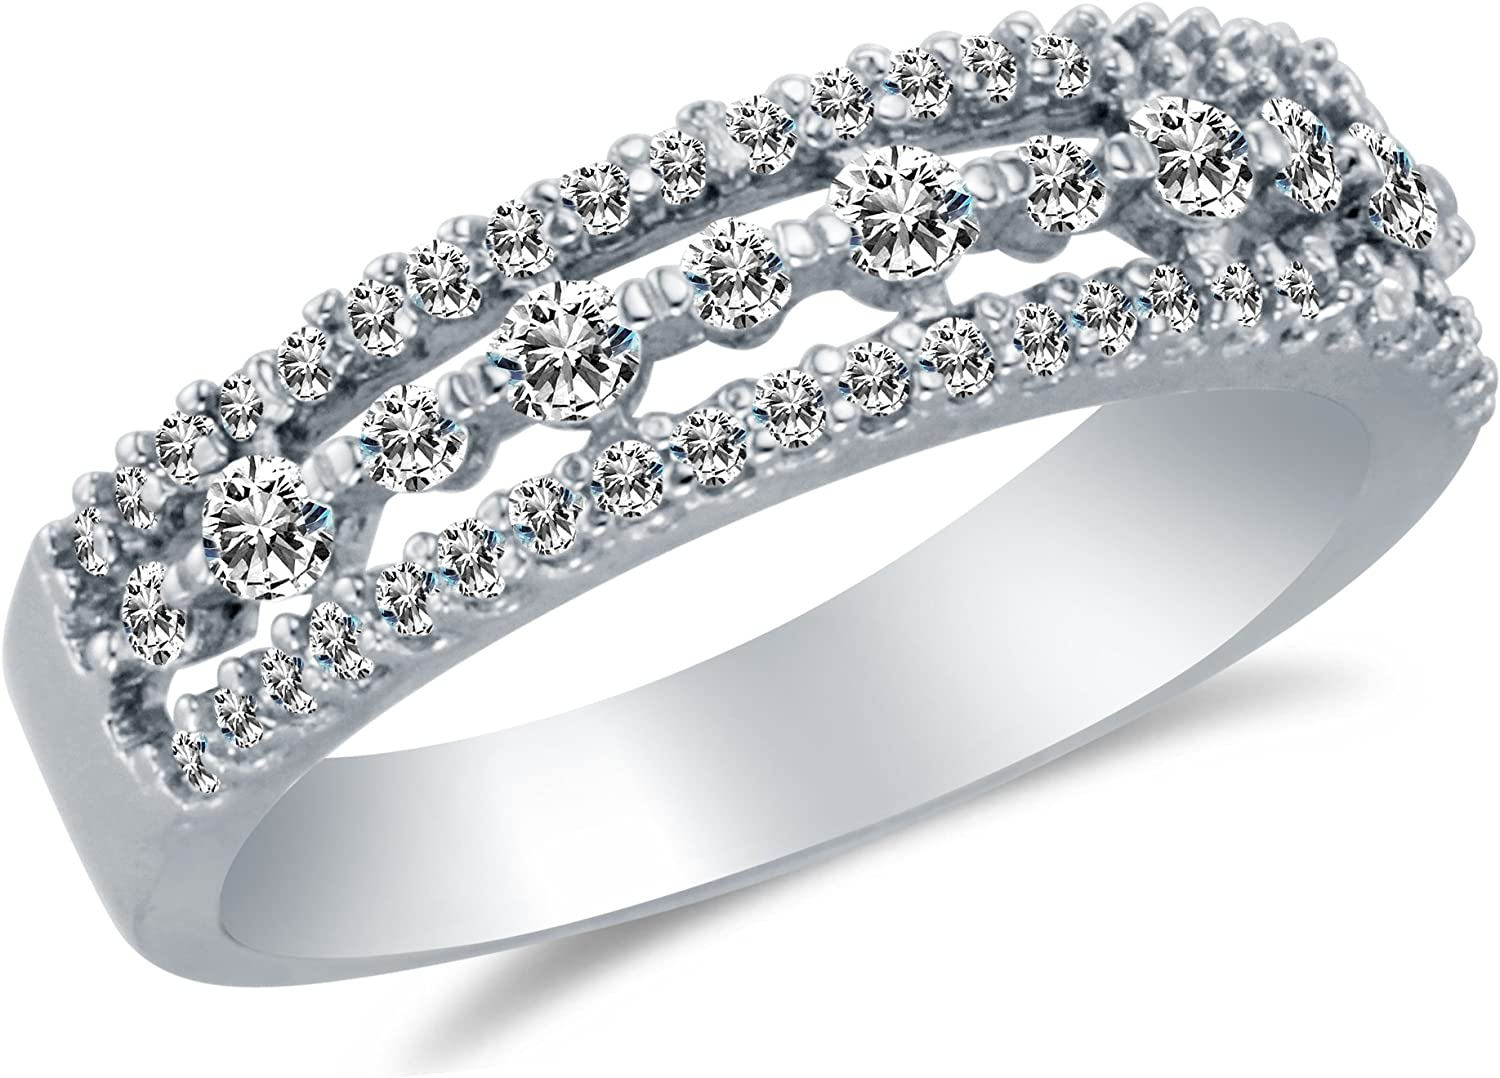 Solid 14K White Gold CZ Cubic Zirconia Wedding or Anniversary Ring Band